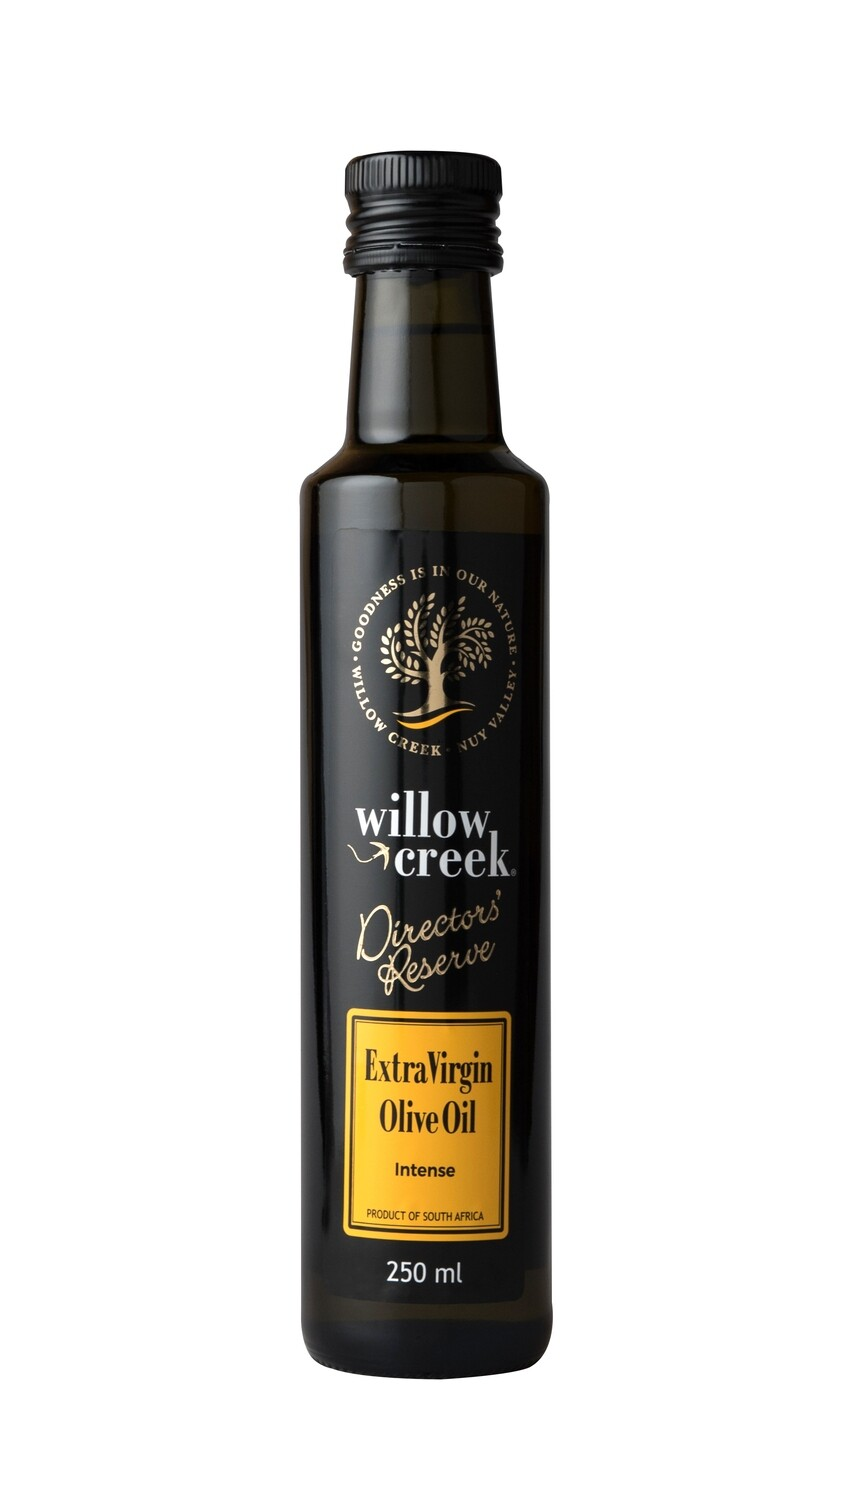 Willow Creek Director's Reserve 250 ml